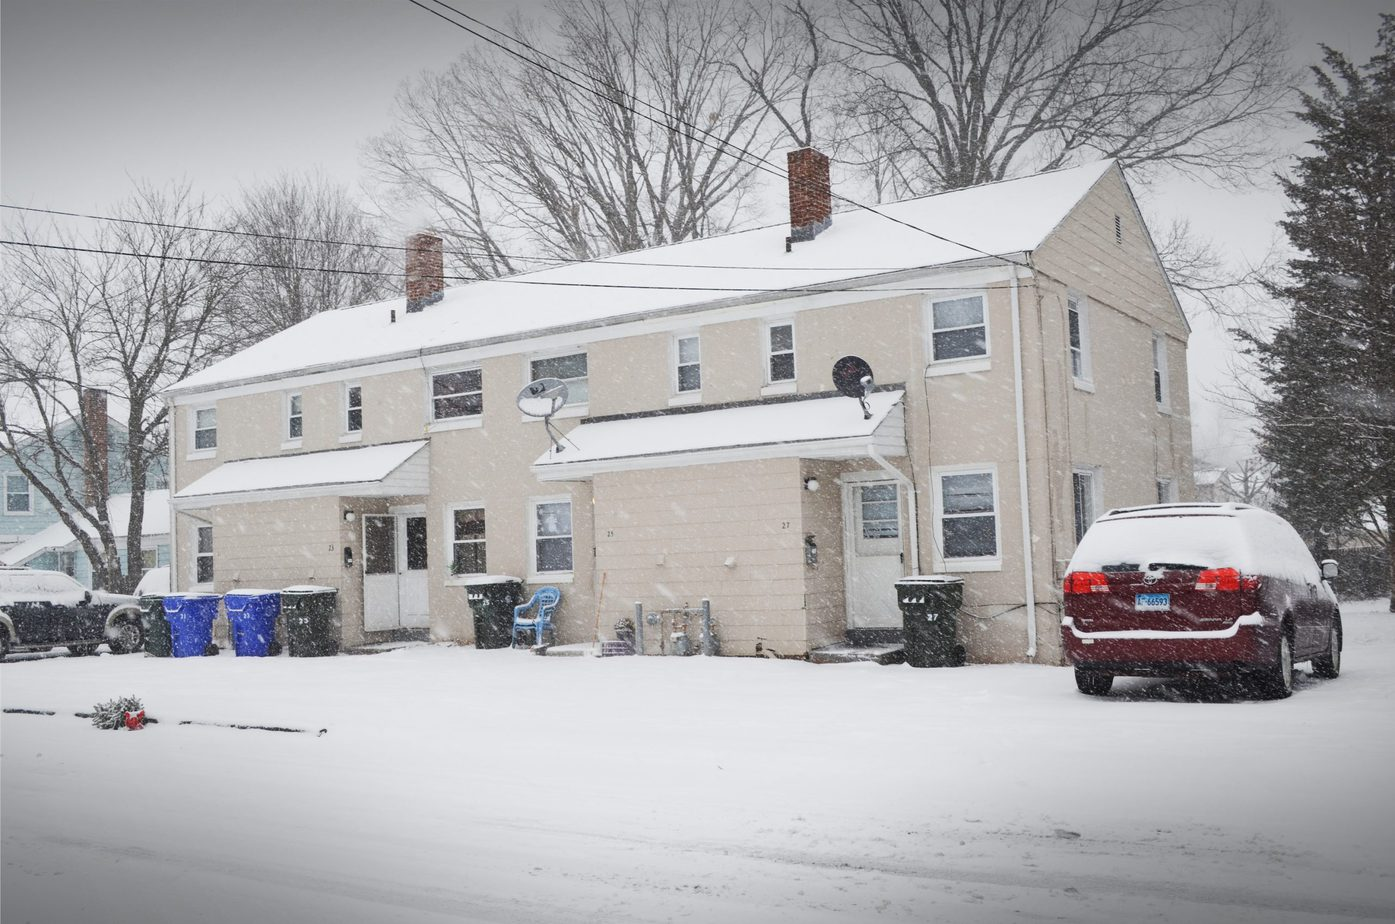 Connecticut rental property with snow on walkway and driveway